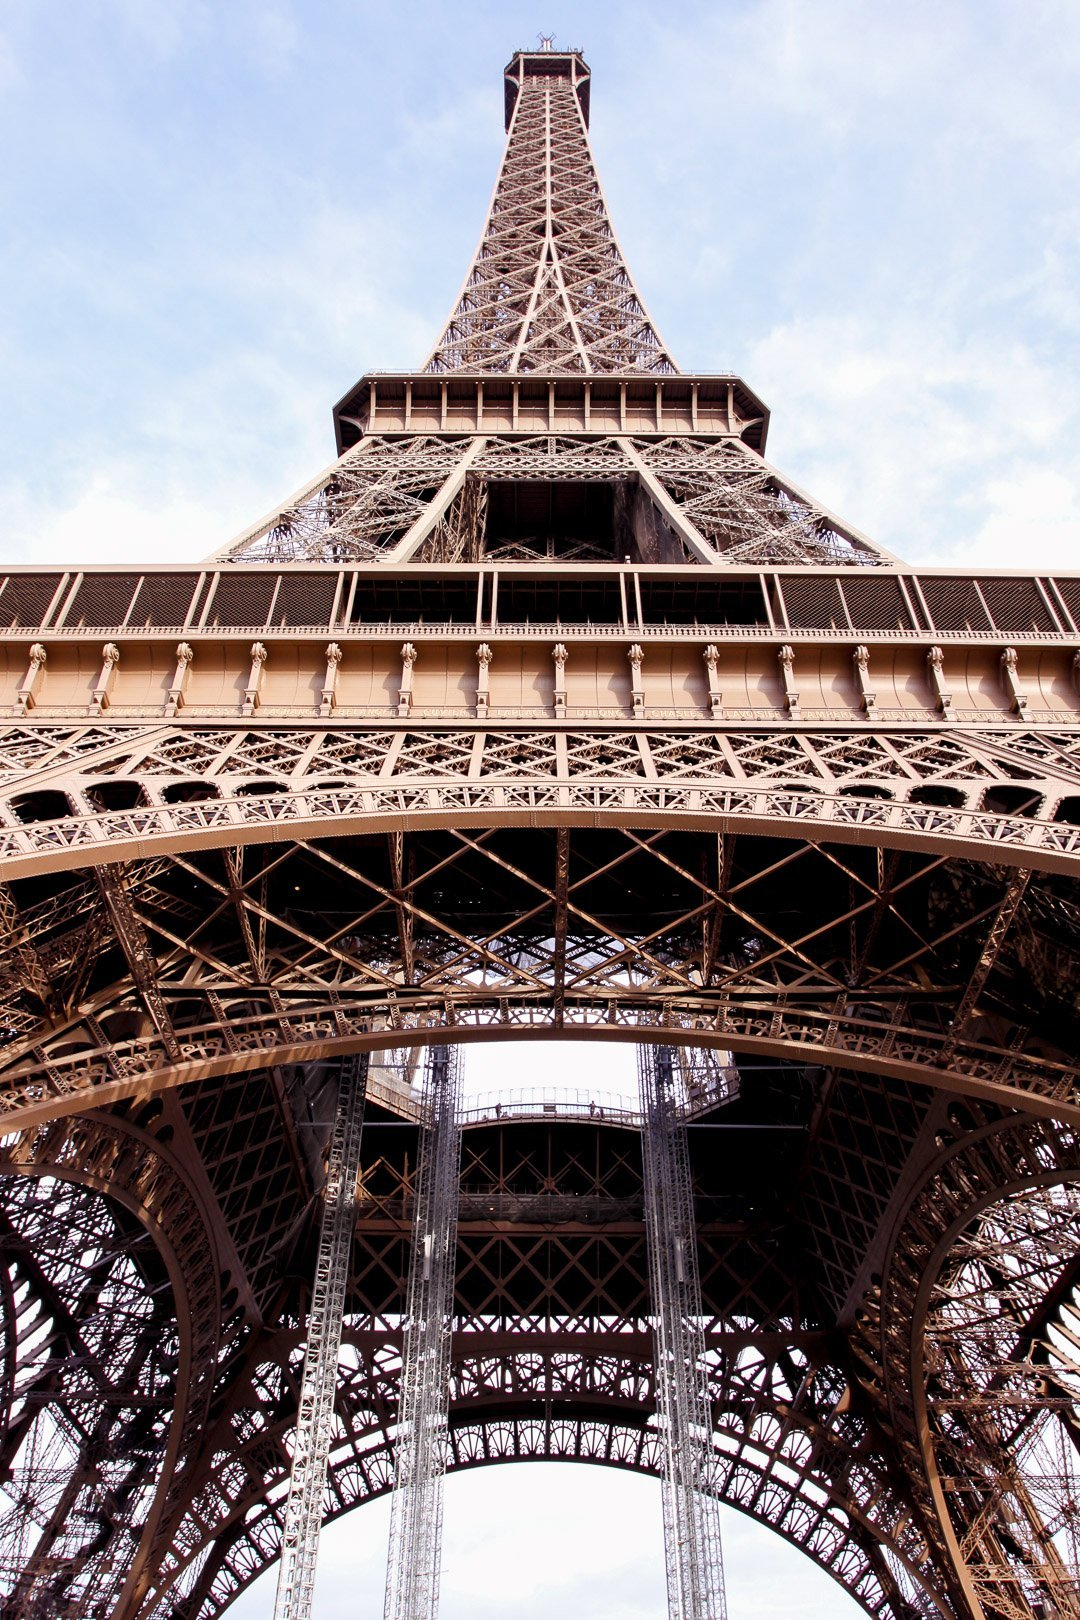 View of the Eiffel Tower in Paris, France from underneath